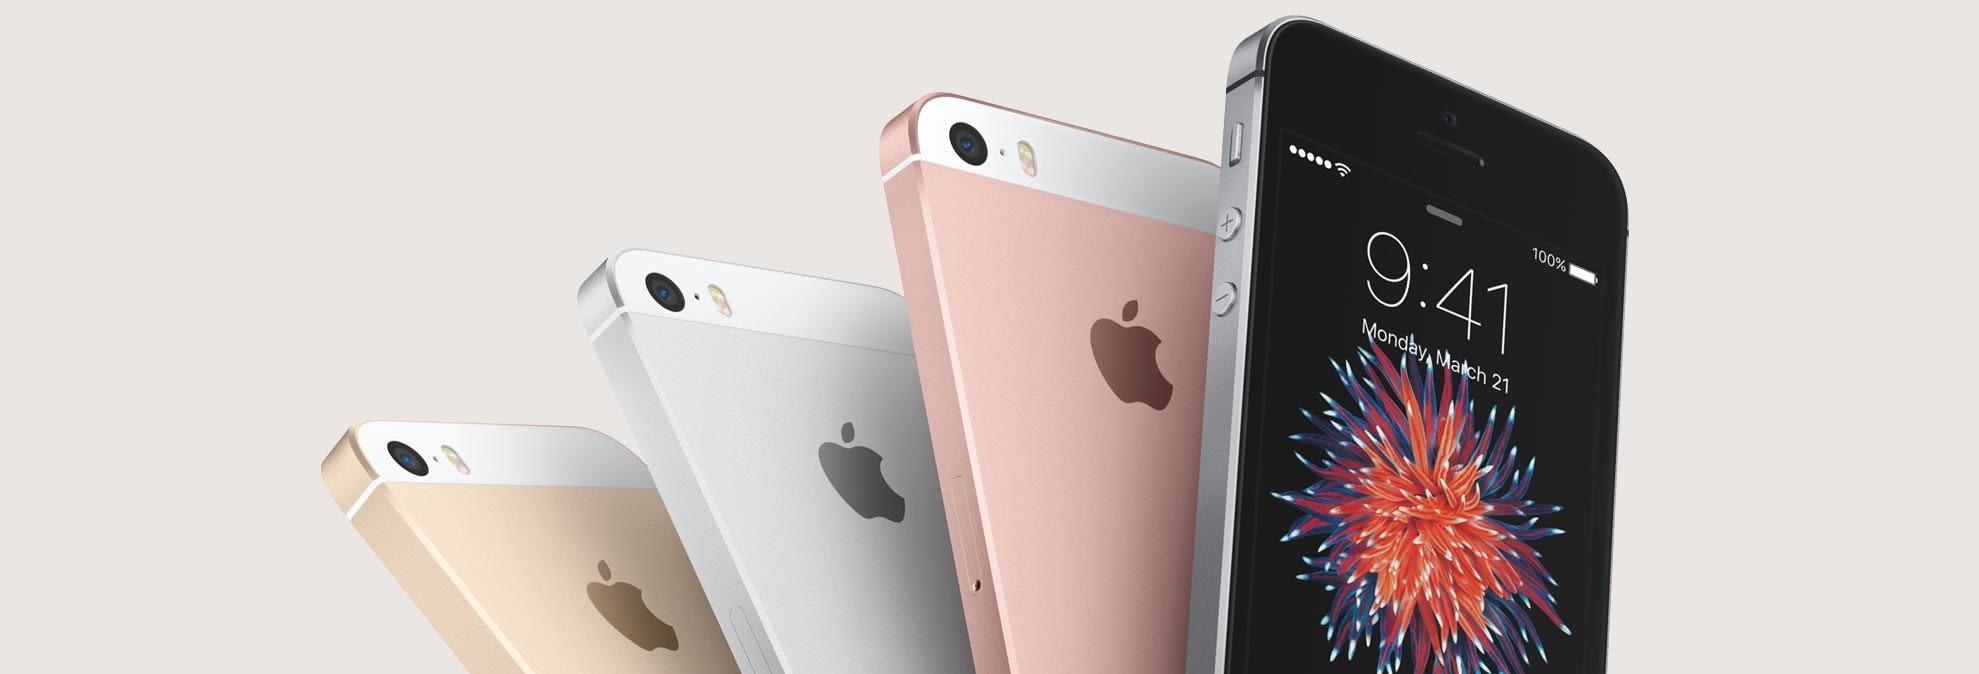 Low-Priced Smartphones With High-End Features - Consumer Reports